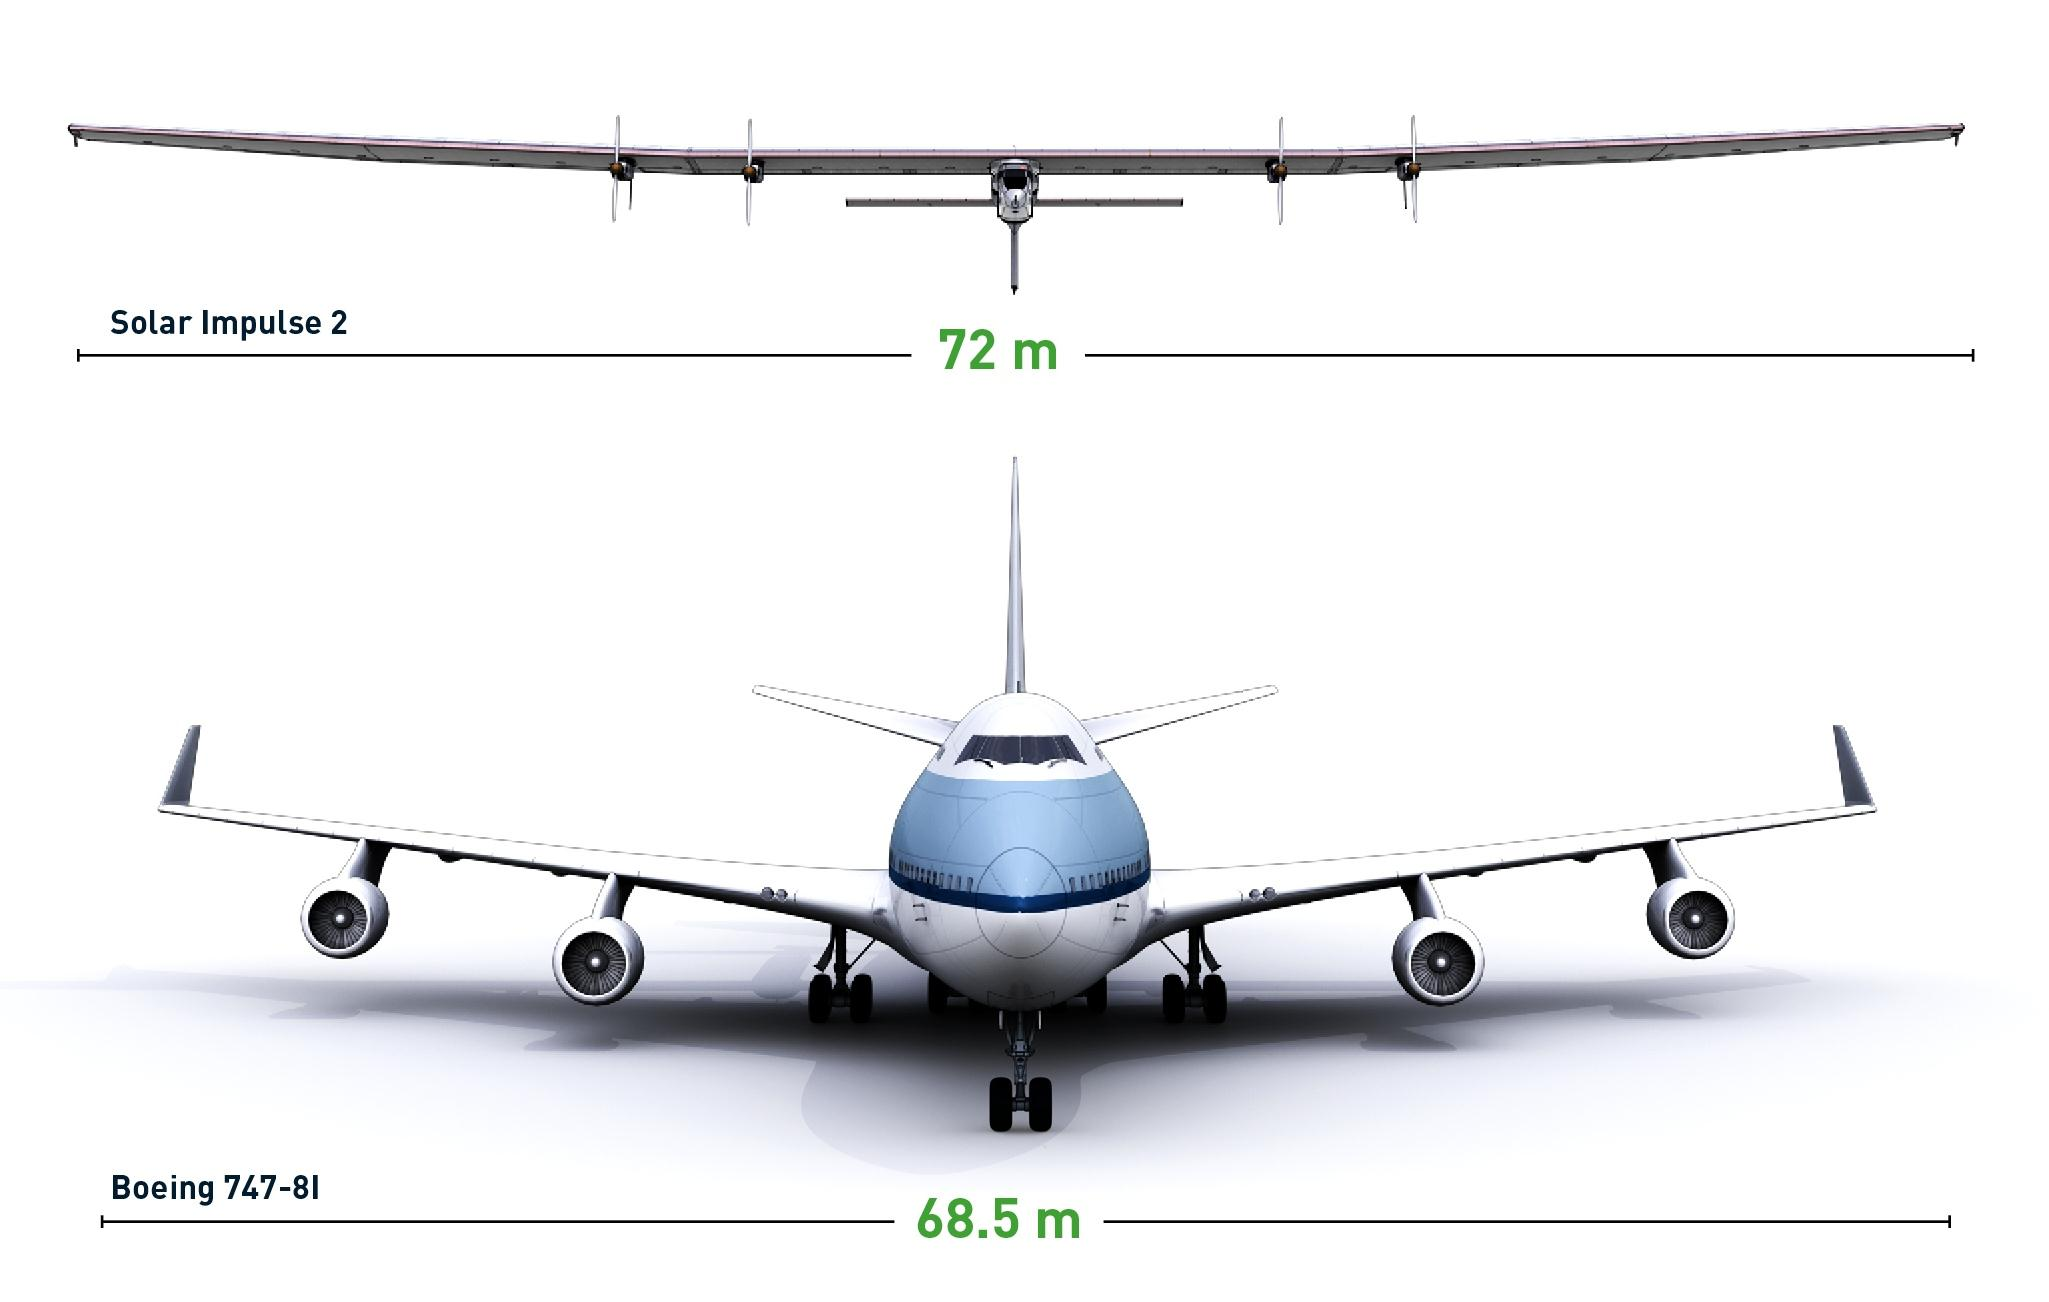 Image: Airplane comparison